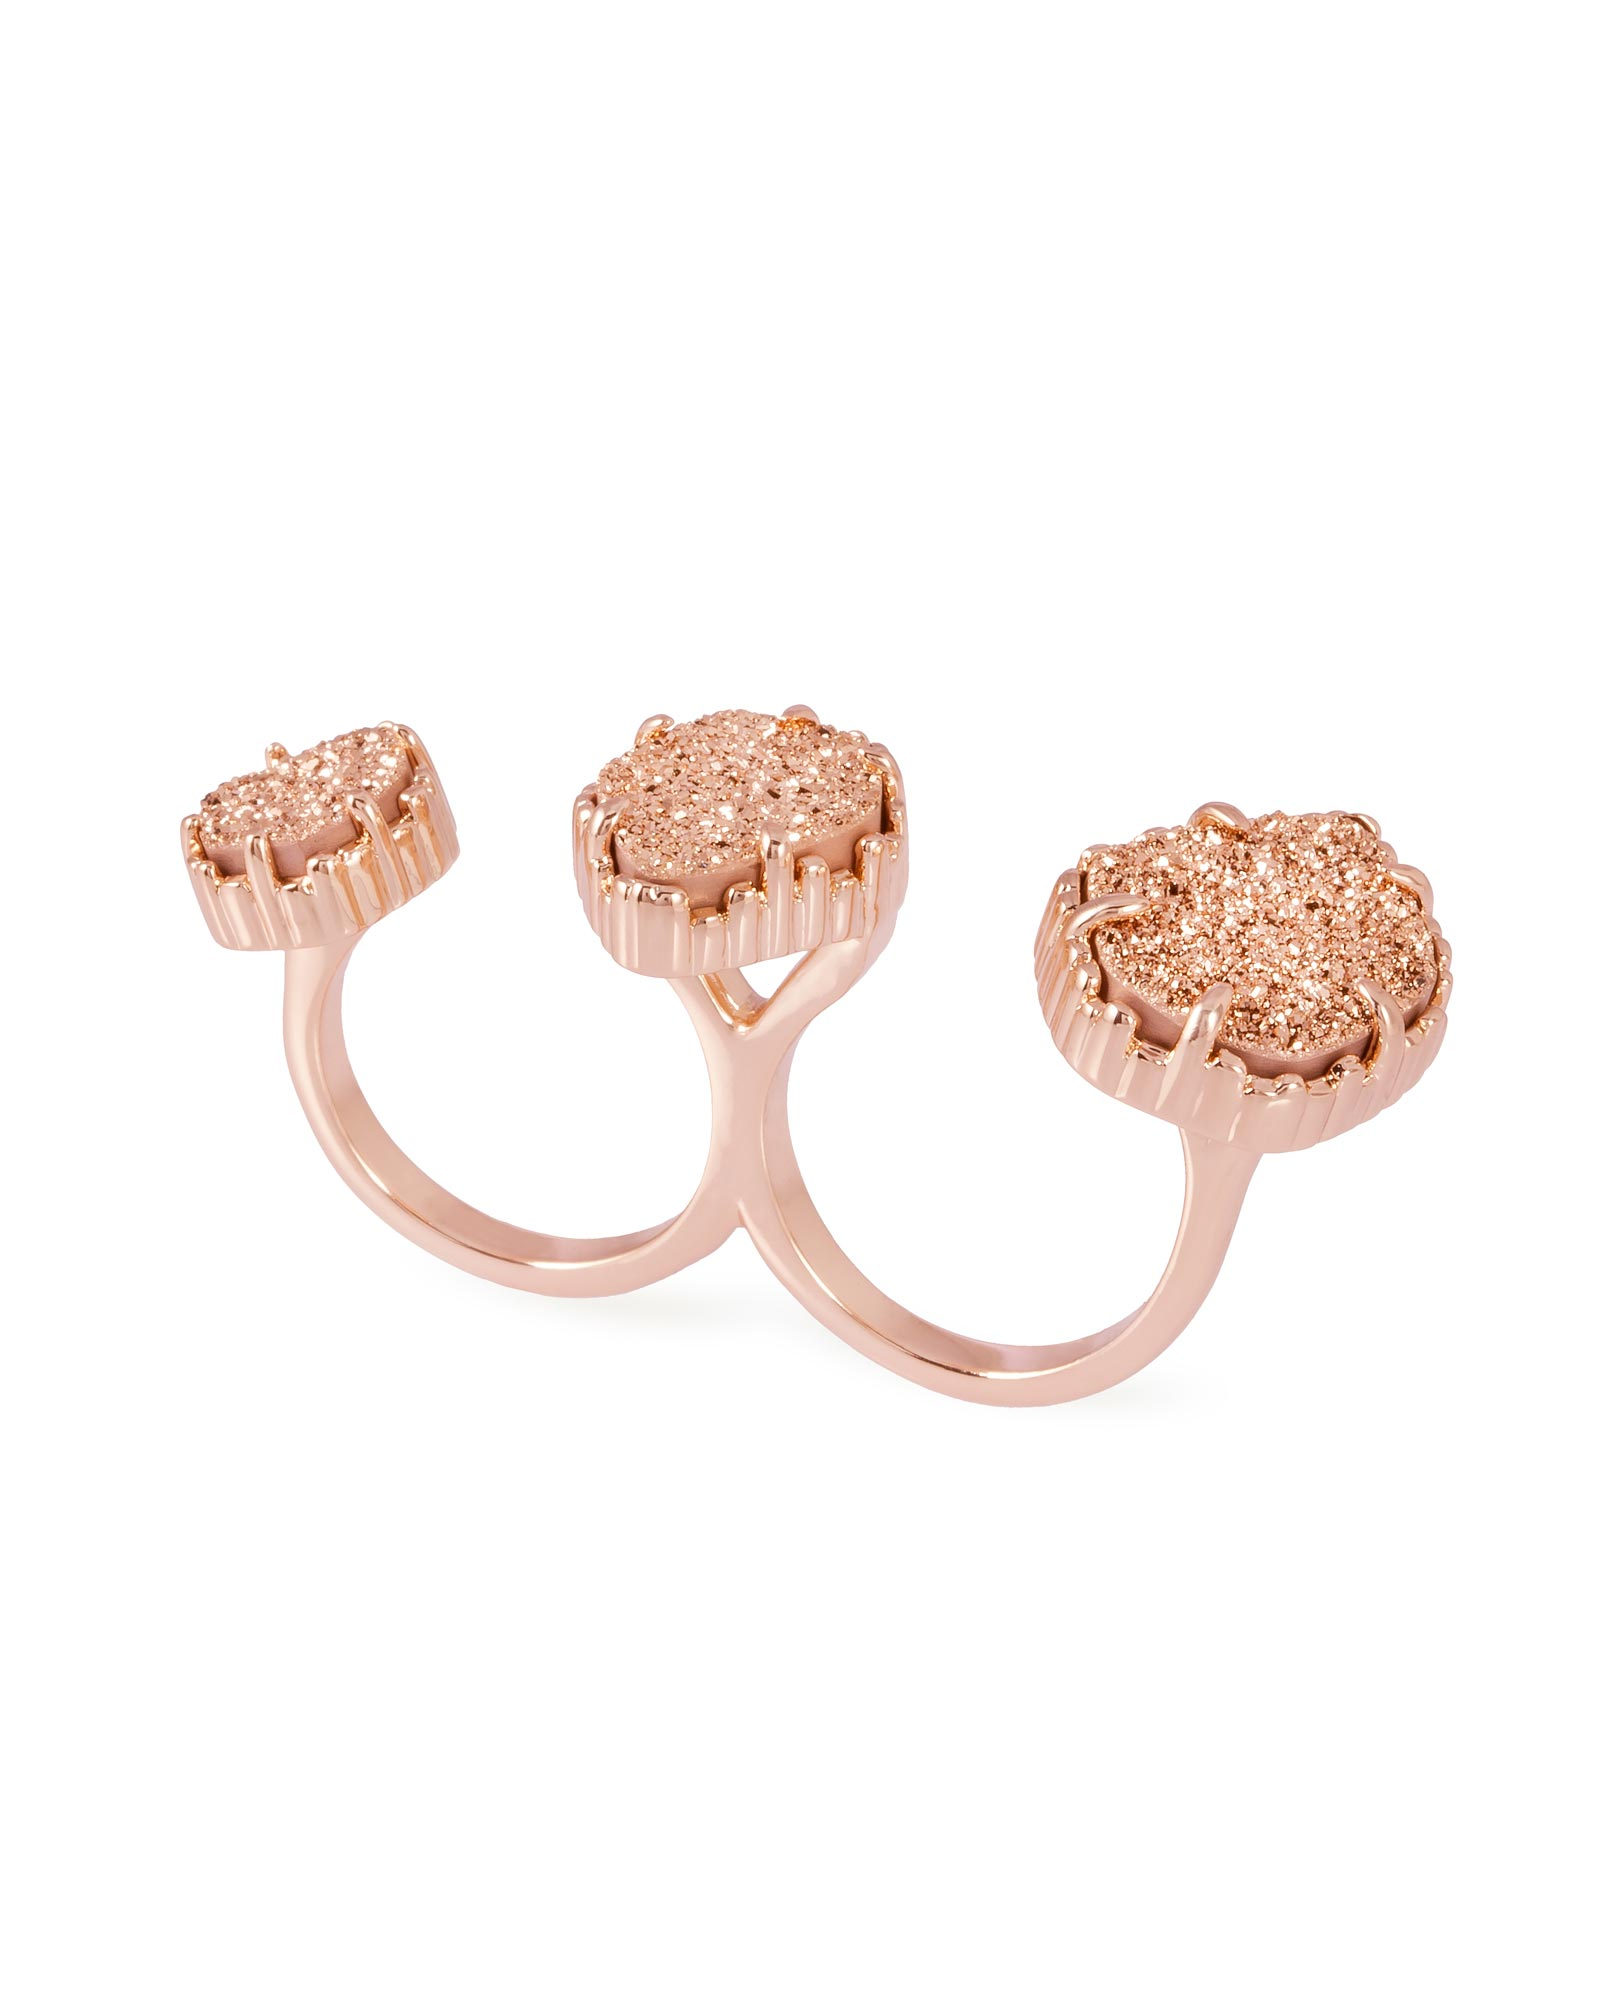 Naomi Double Ring in Rose Gold Drusy